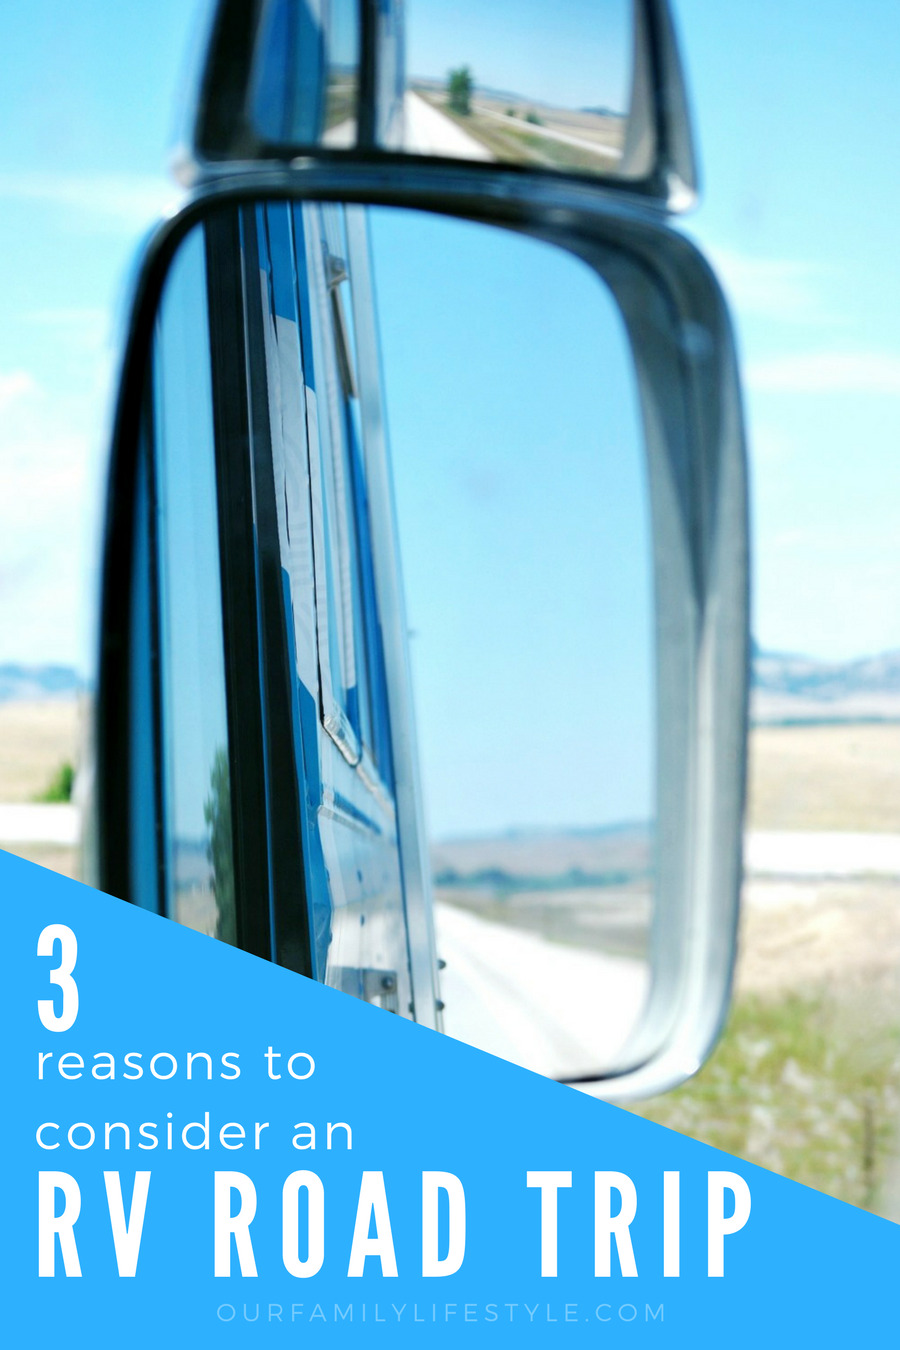 reasons to consider an RV road trip